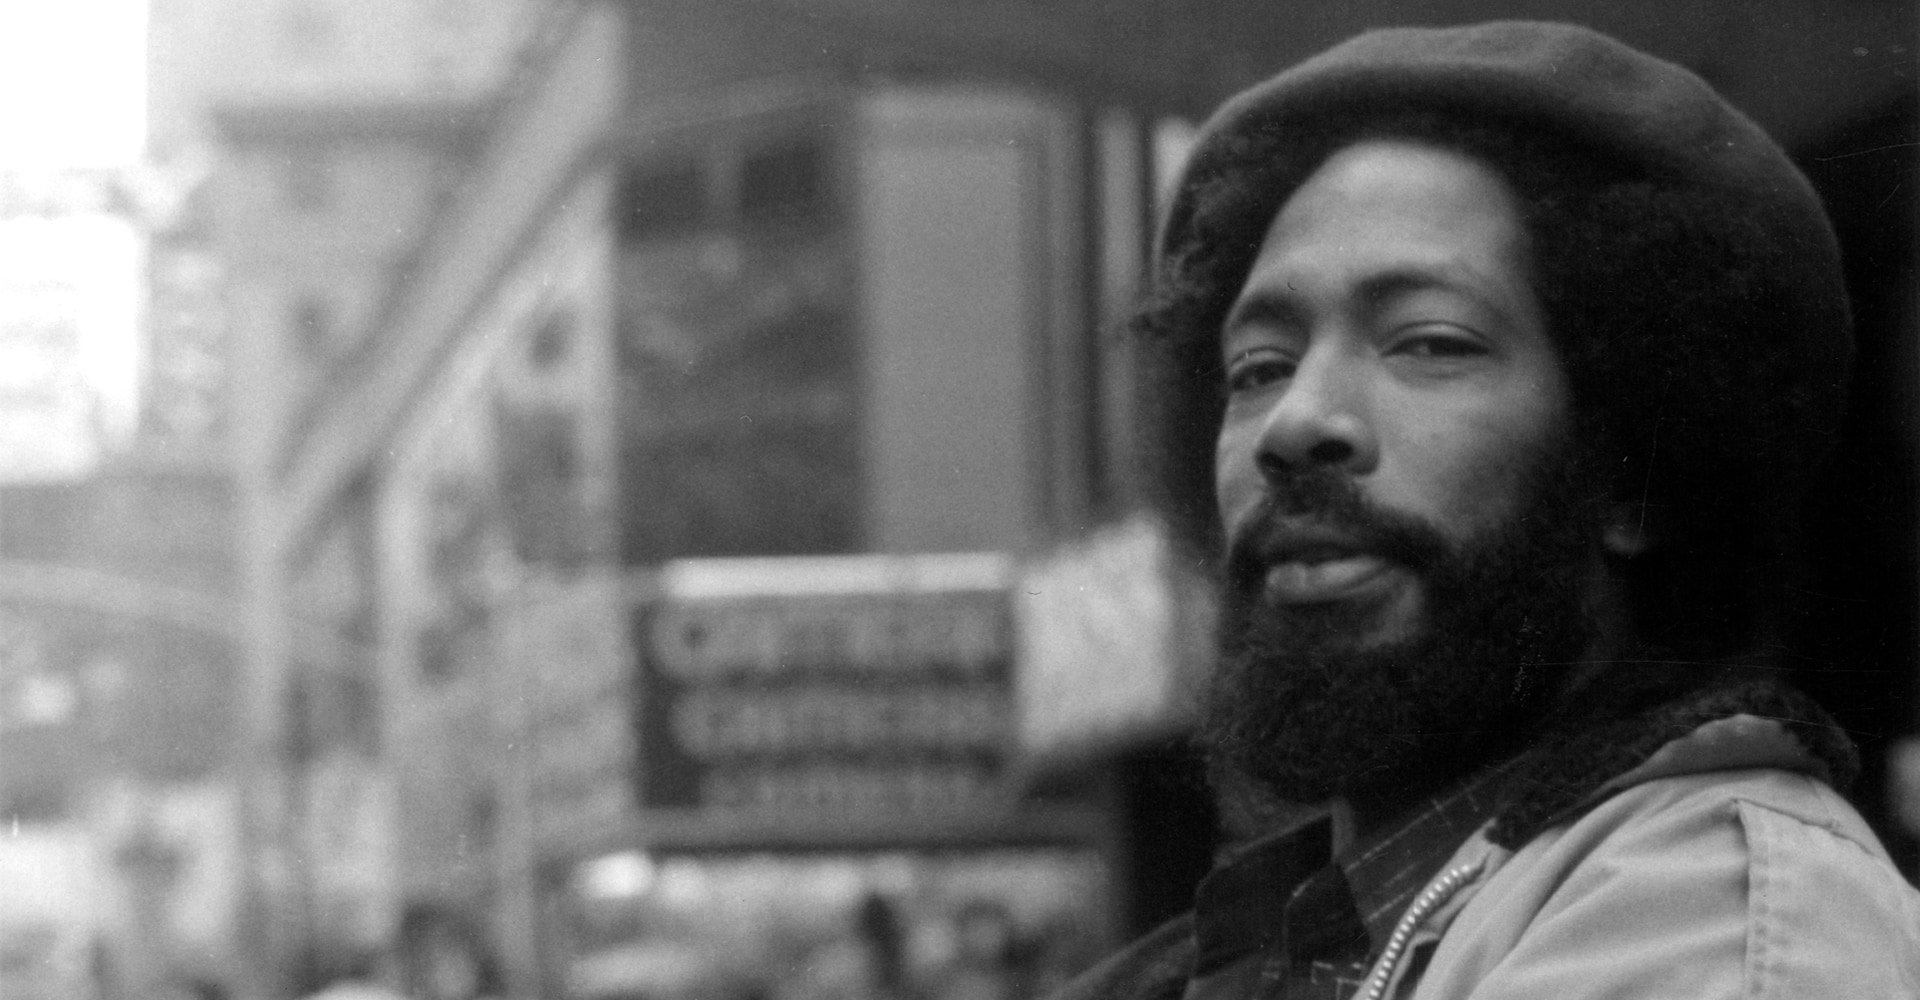 A man with a beard and afro, wearing a hat, looks at the camera. Behind him, out of focus, is a bustling urban street. Courtesy of Daniel Cauderion